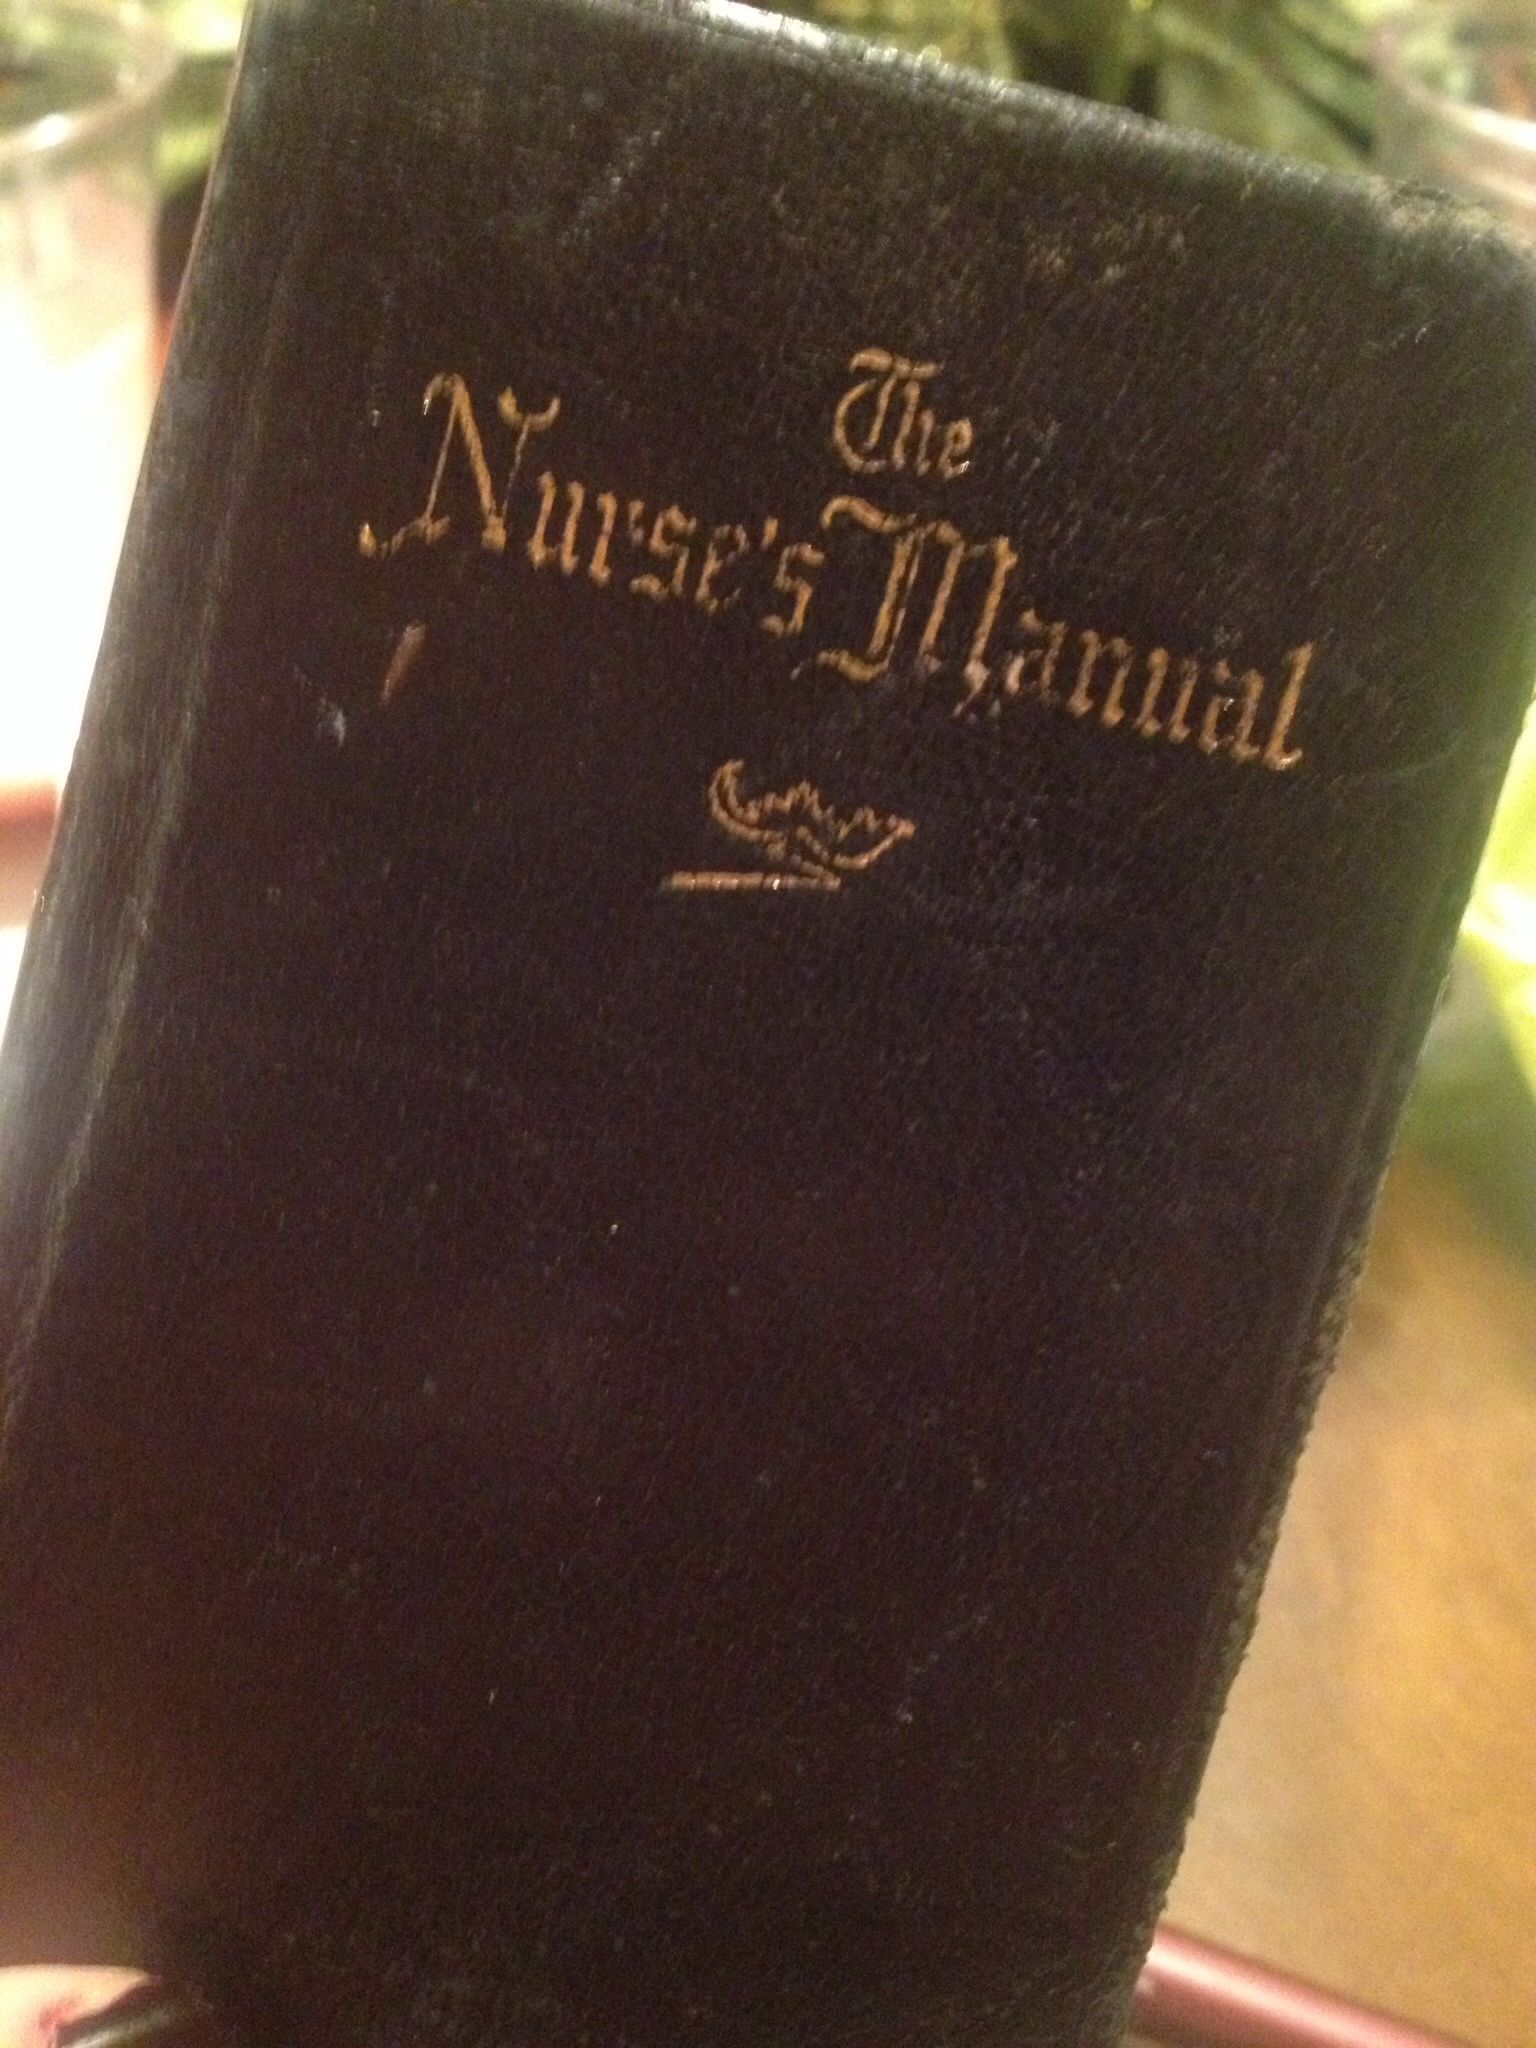 A timeless piece given to me by my Aunt. This book was given to her when she was 20.